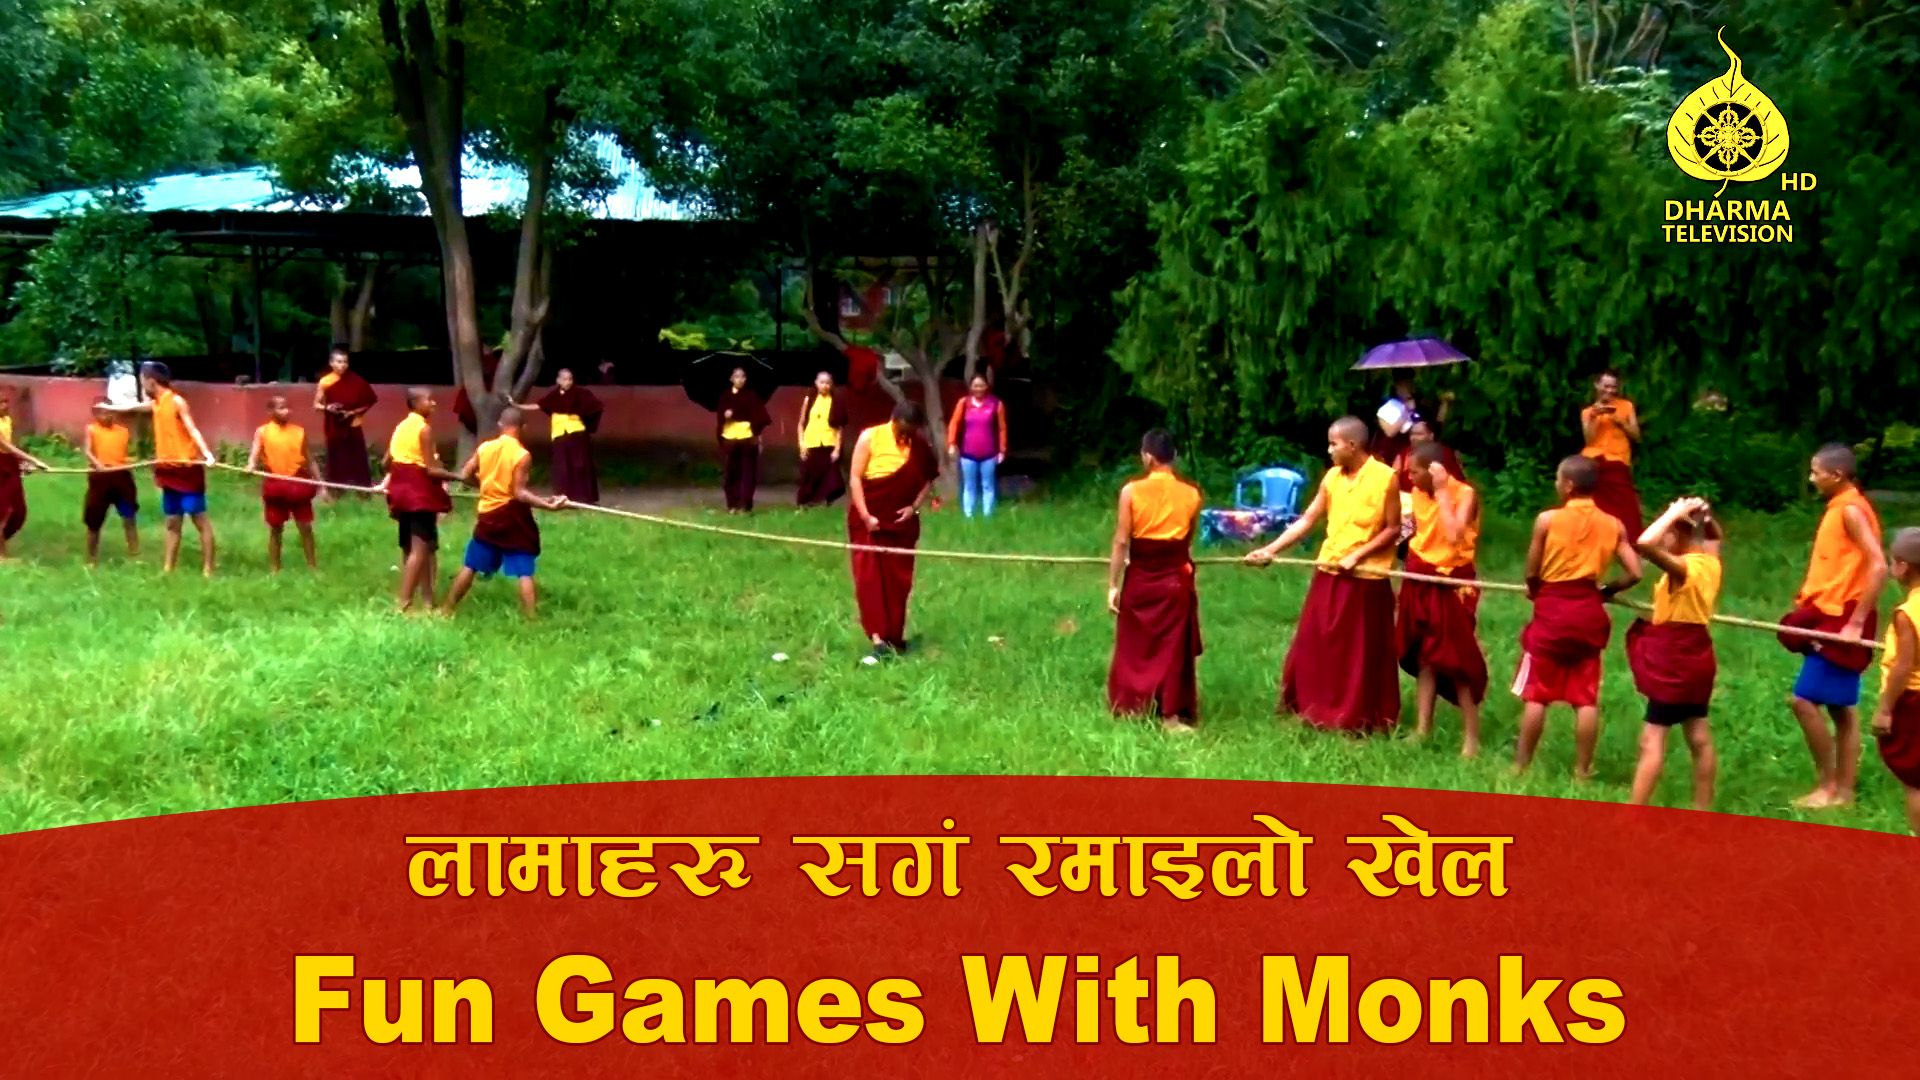 Fun Games With Monks